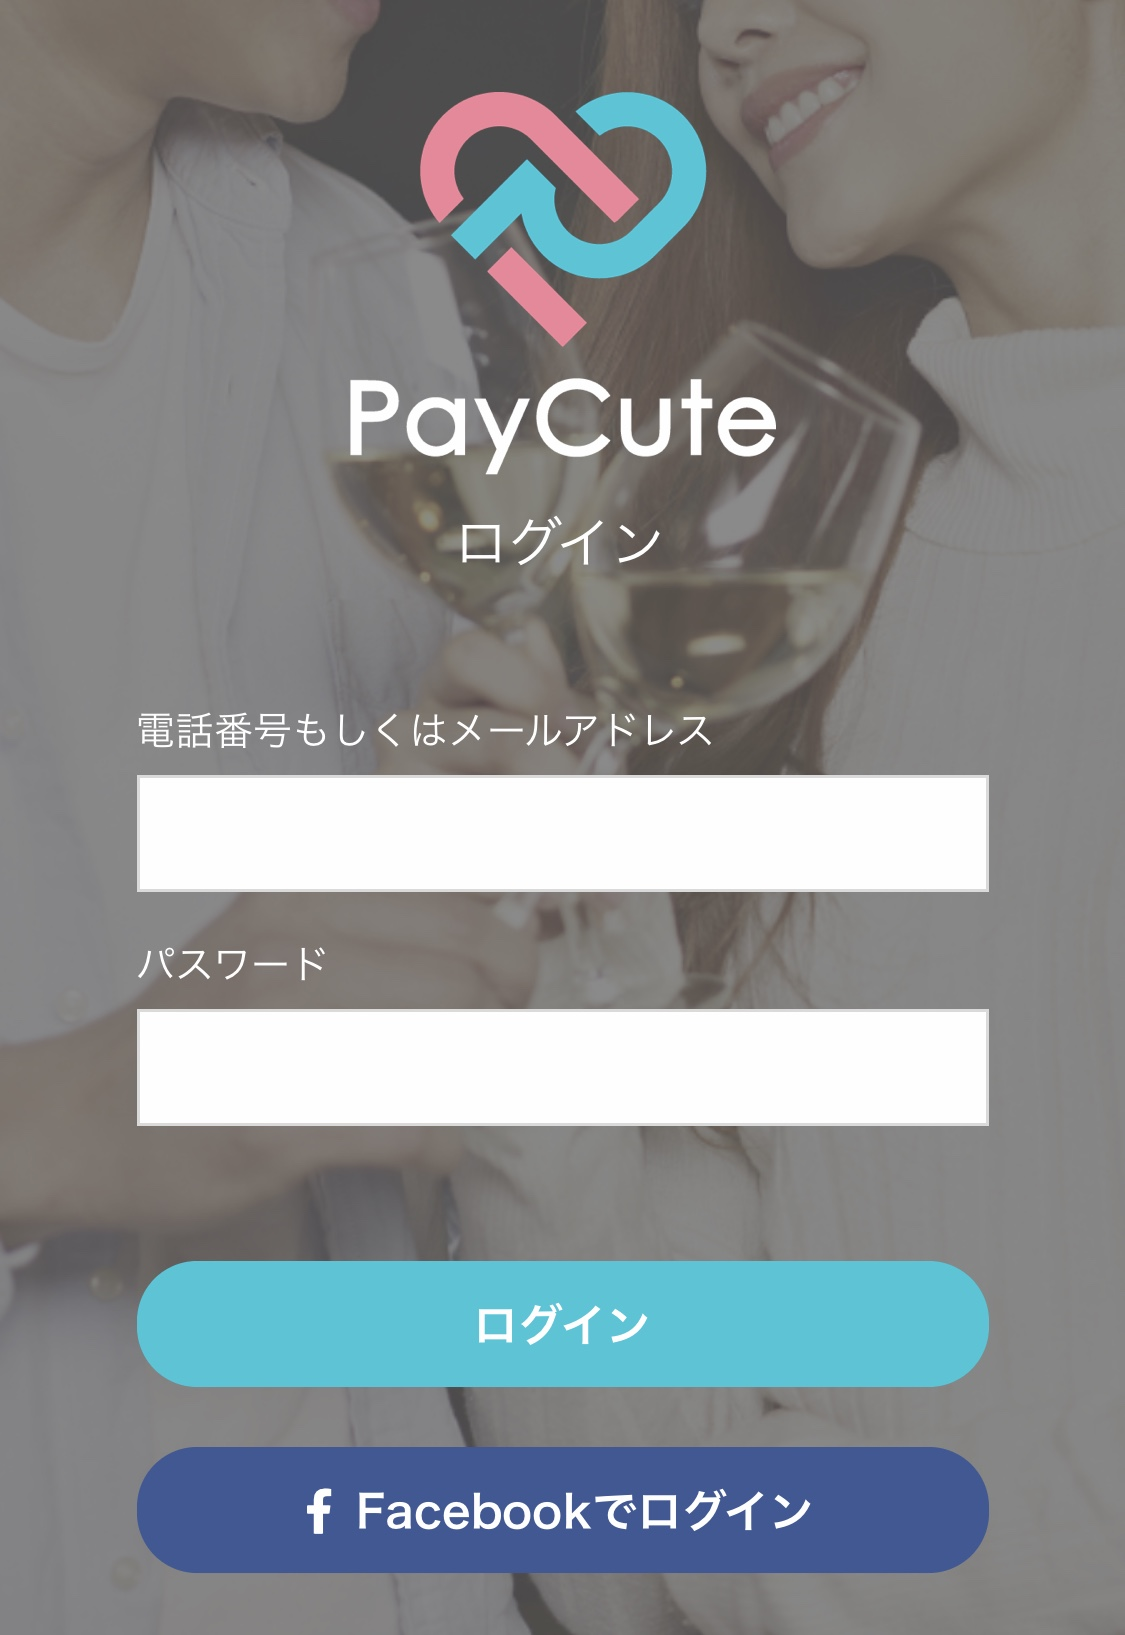 PayCute(ペイキュート) ログイン画面